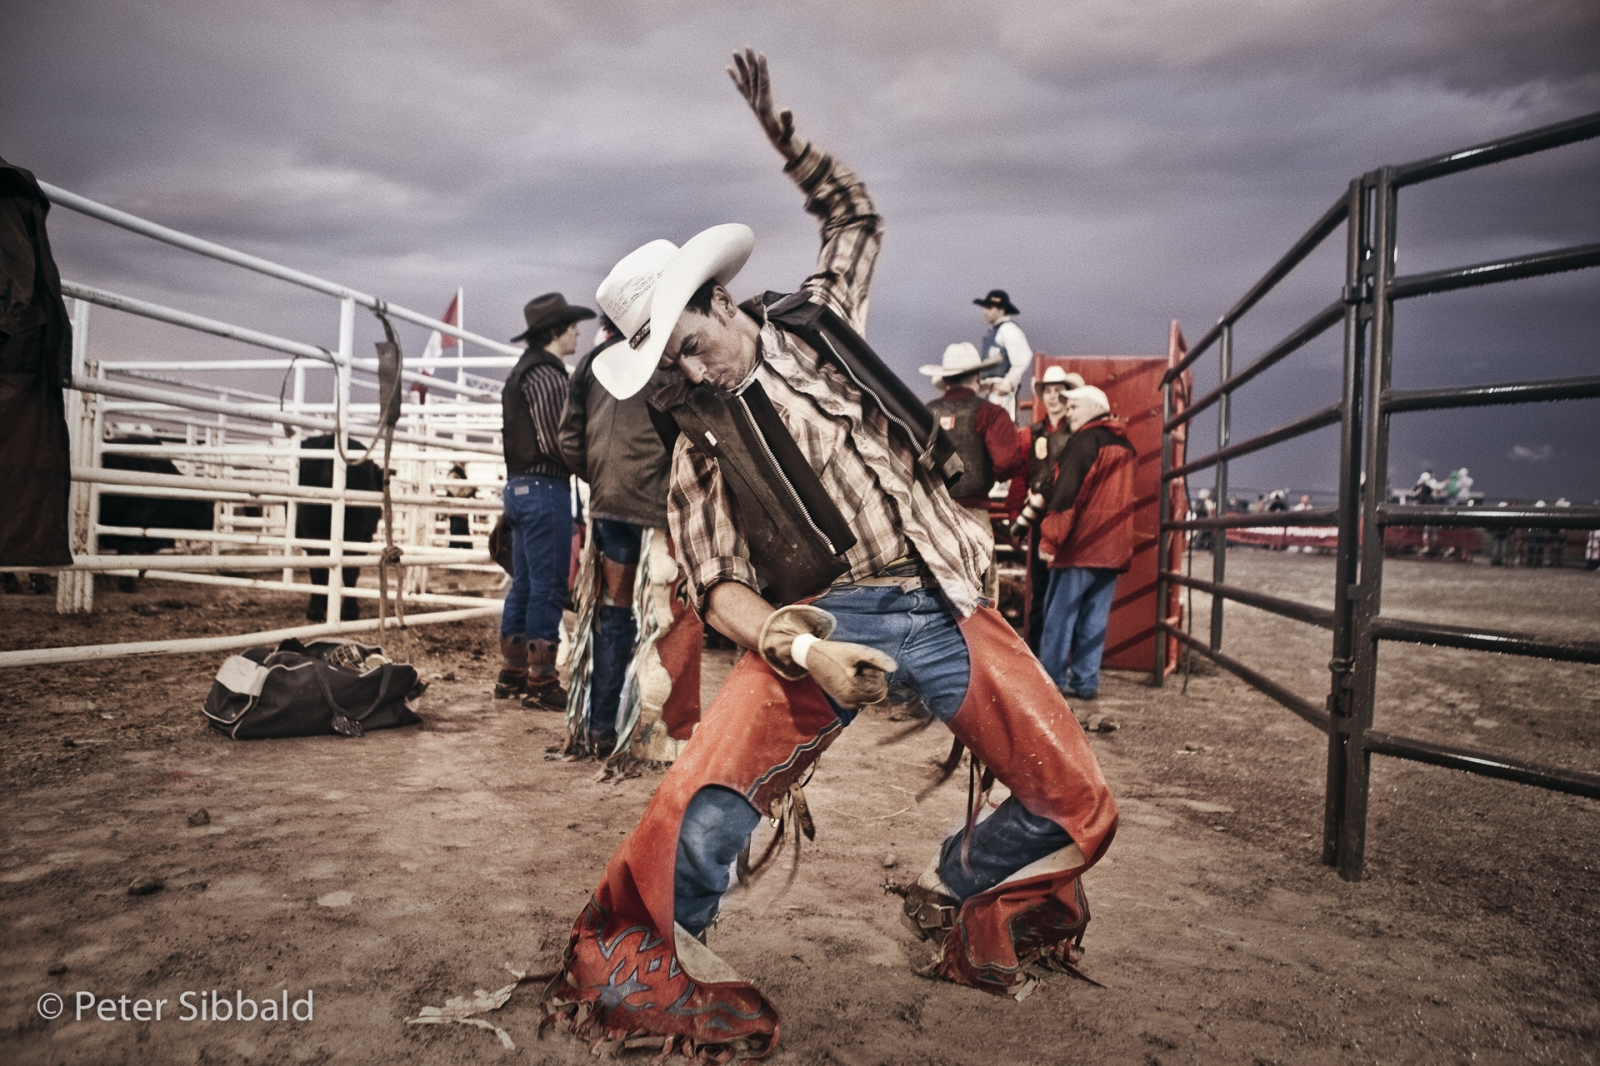 Art and Documentary Photography - Loading 029-rodeo_lindsay20090530_0175-6480pxToPrint-rev4.jpg